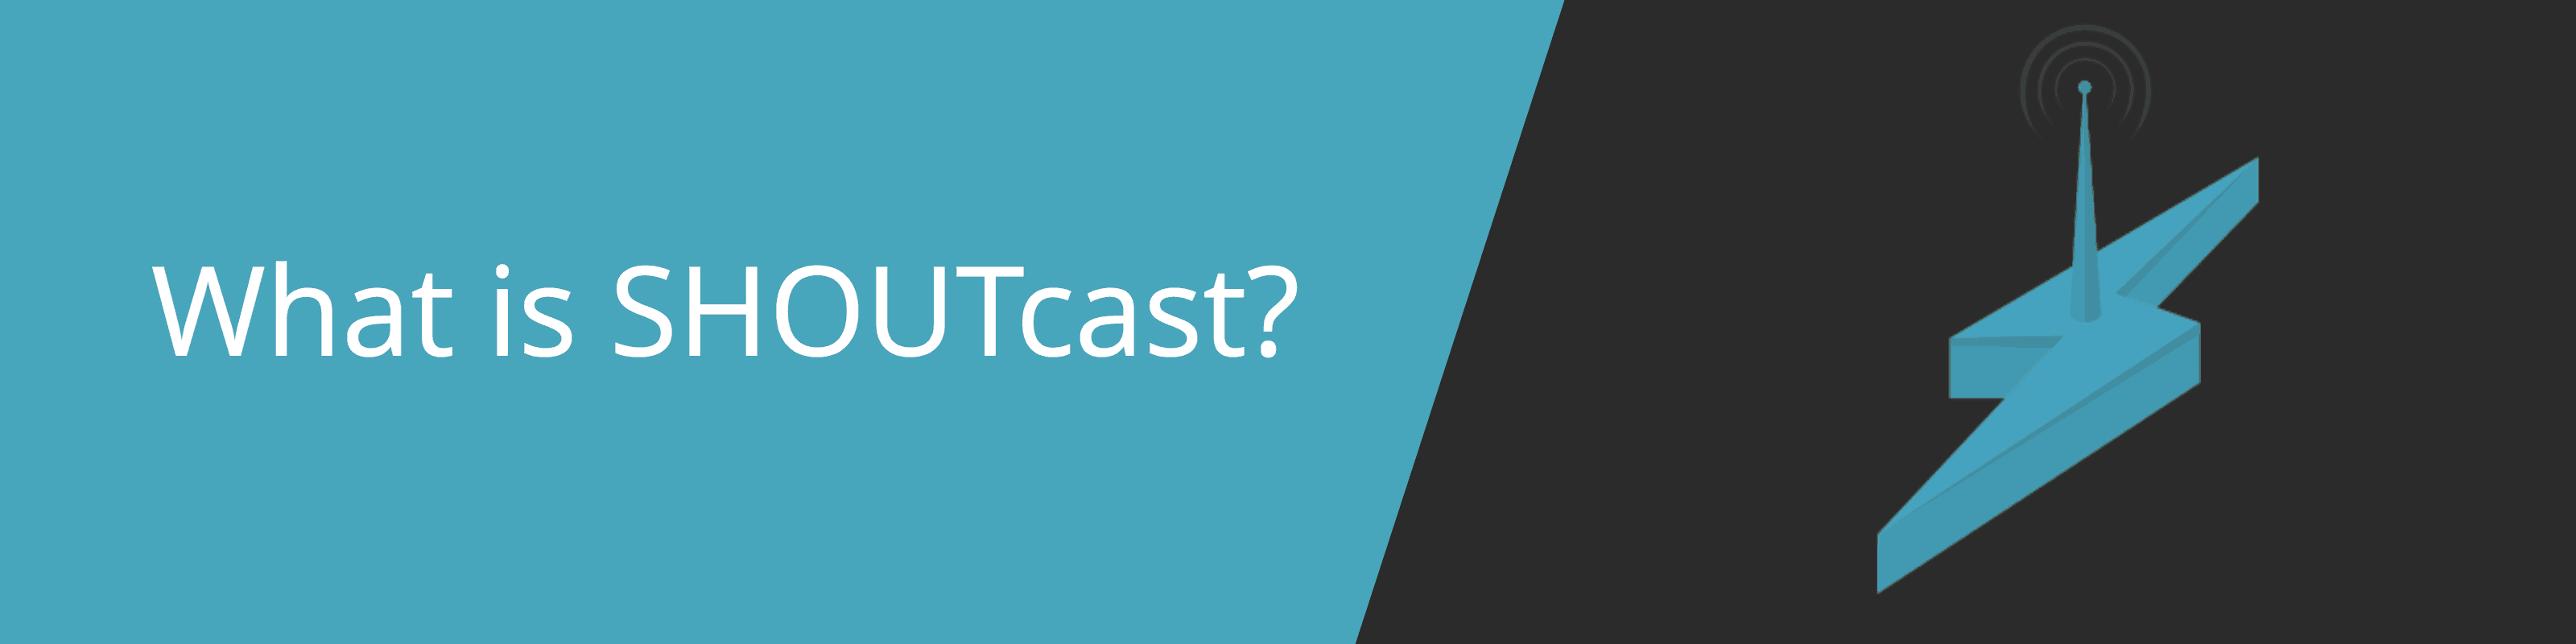 what is shoutcast